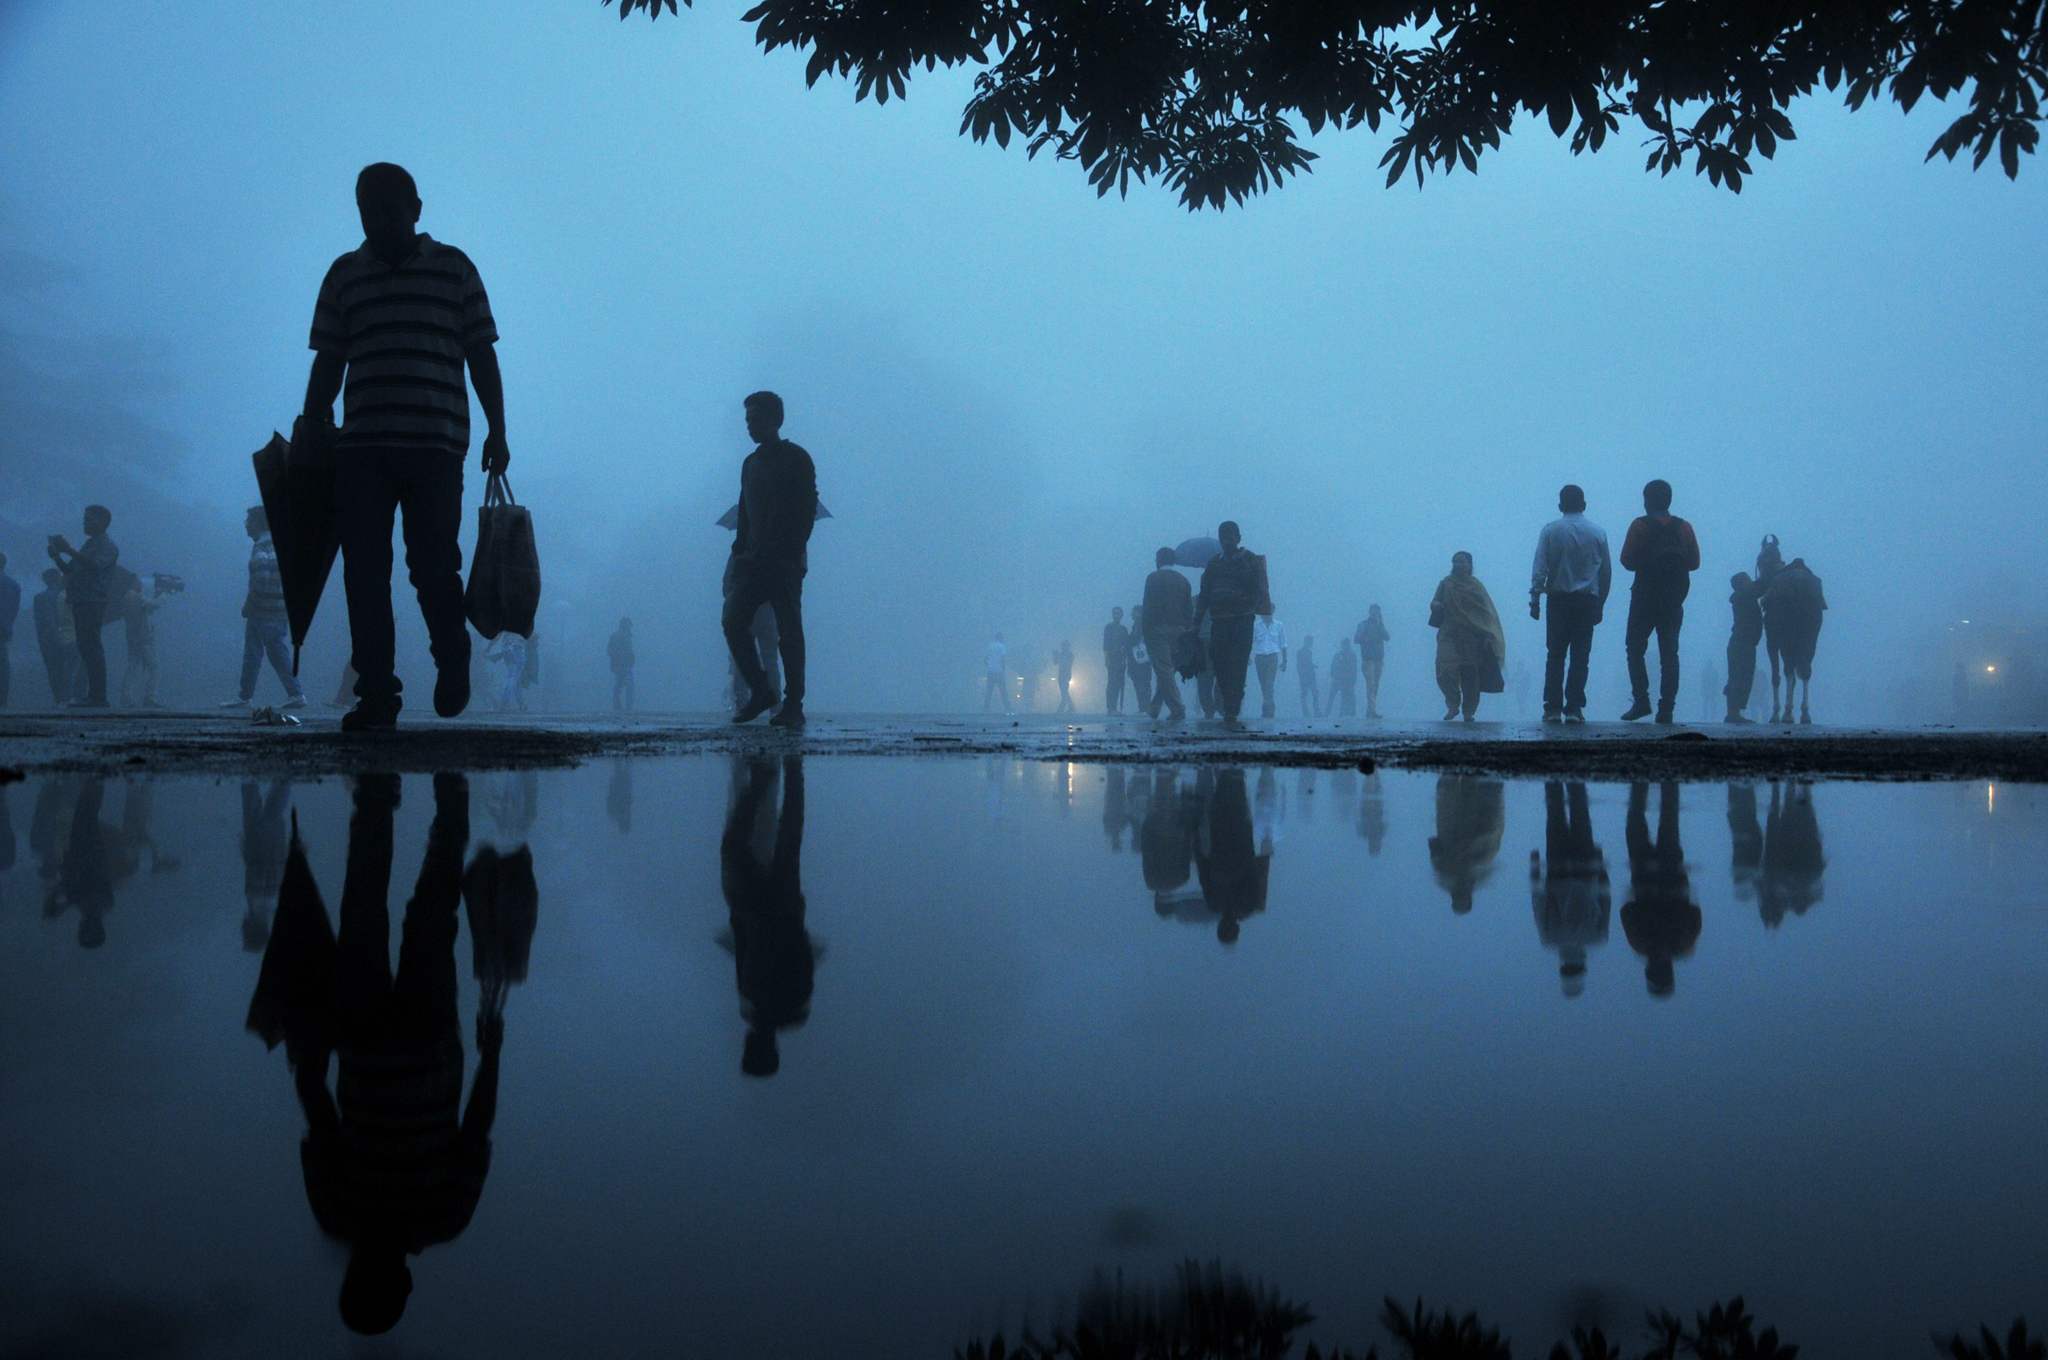 Indian pedestrians are reflected in a puddle after a rainfall in the northern hill town of Shimla on August 20, 2105. AFP PHOTO / STRSTRDEL/AFP/Getty Images